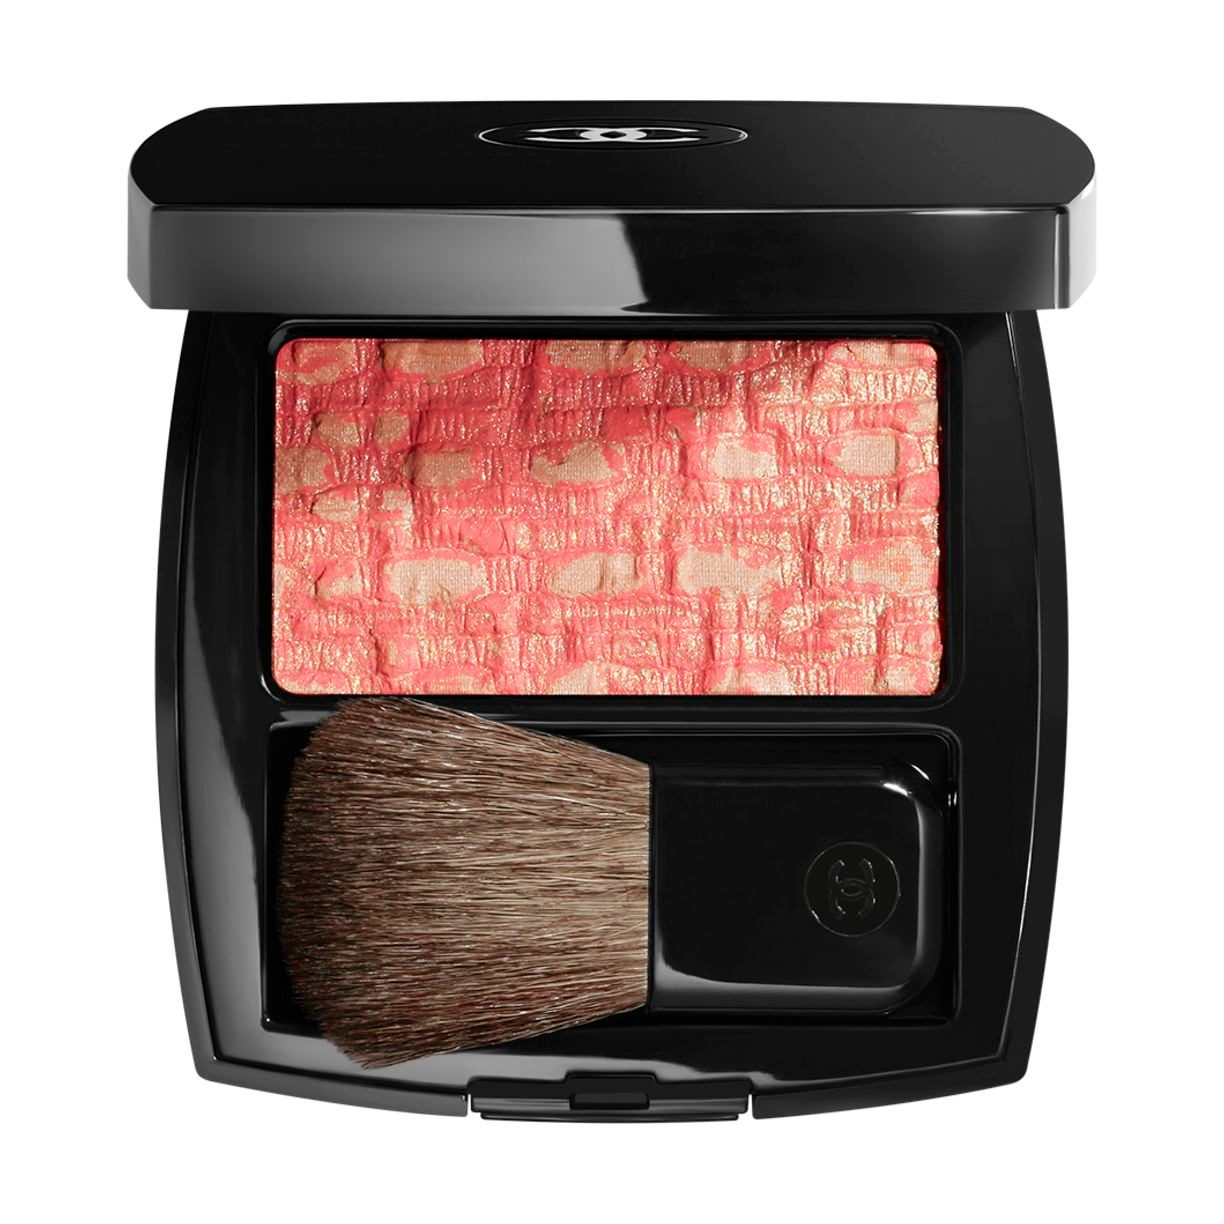 LES TISSAGES DE CHANEL PUDERROUGE-DUO MIT TWEED-OPTIK